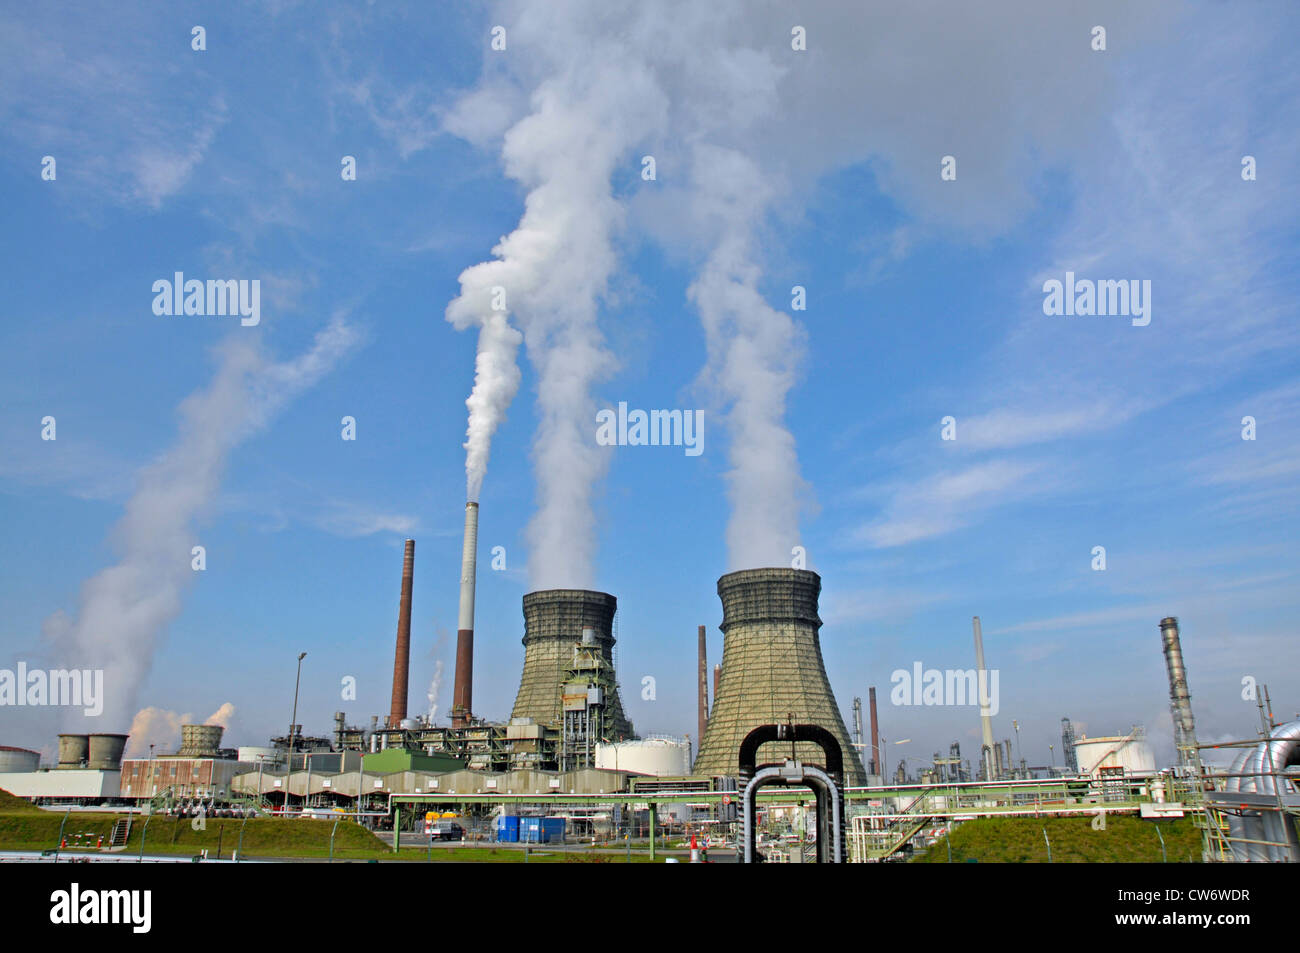 vent stack and blower of the petroleum refinery in Wesseling, Germany, North Rhine-Westphalia, Wesseling - Stock Image